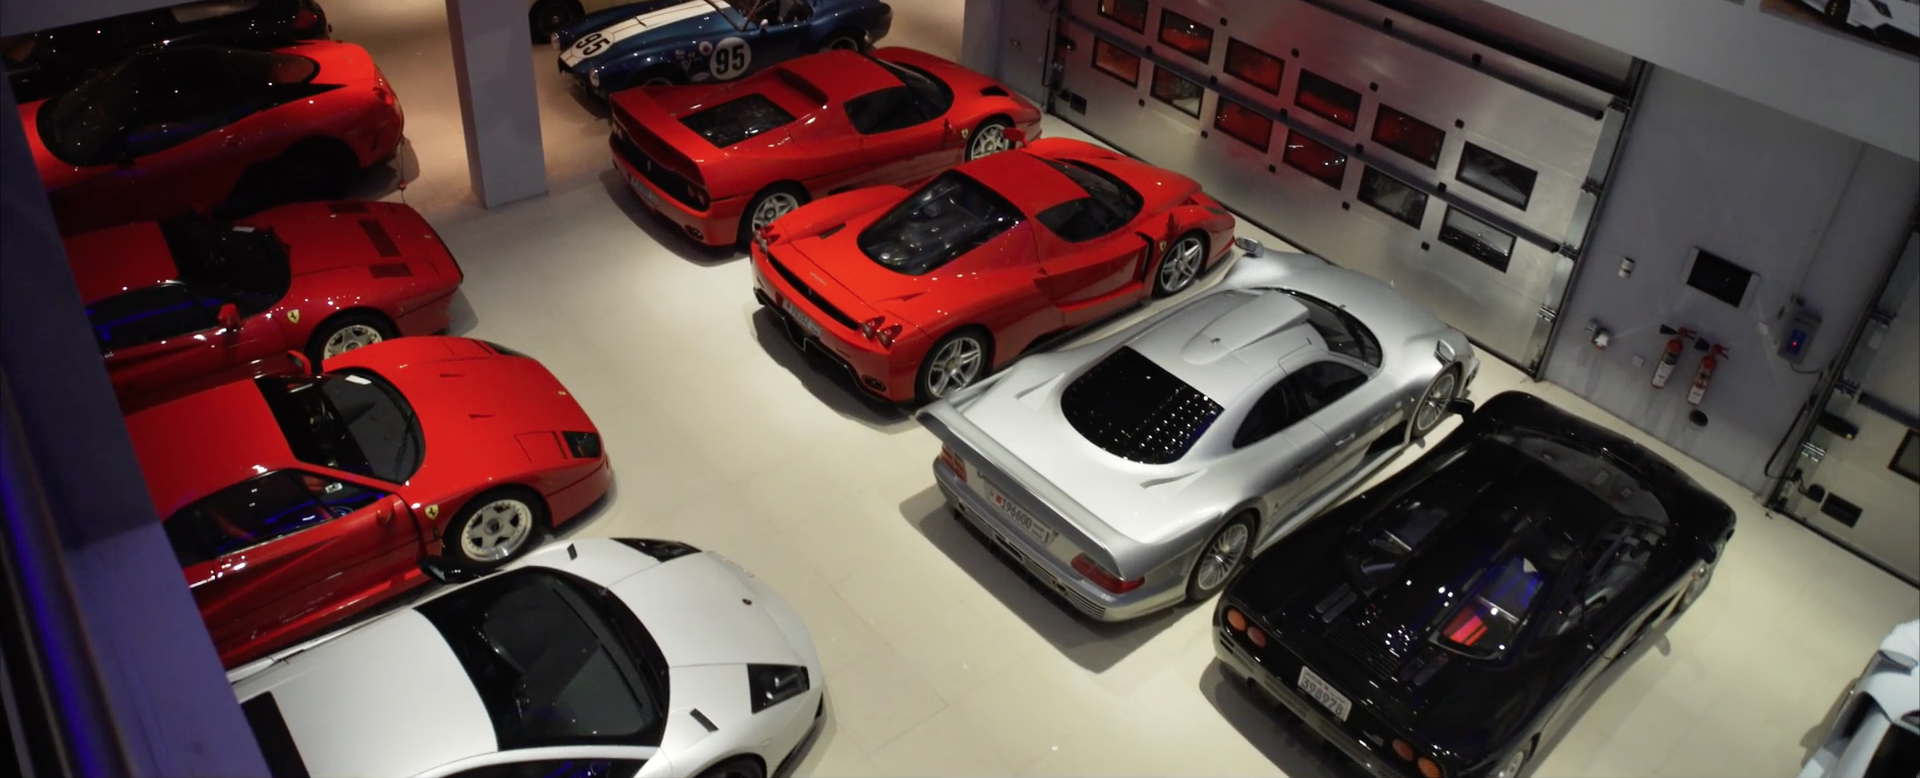 Bahrain Is Home To One Of The World's Best Car Collections